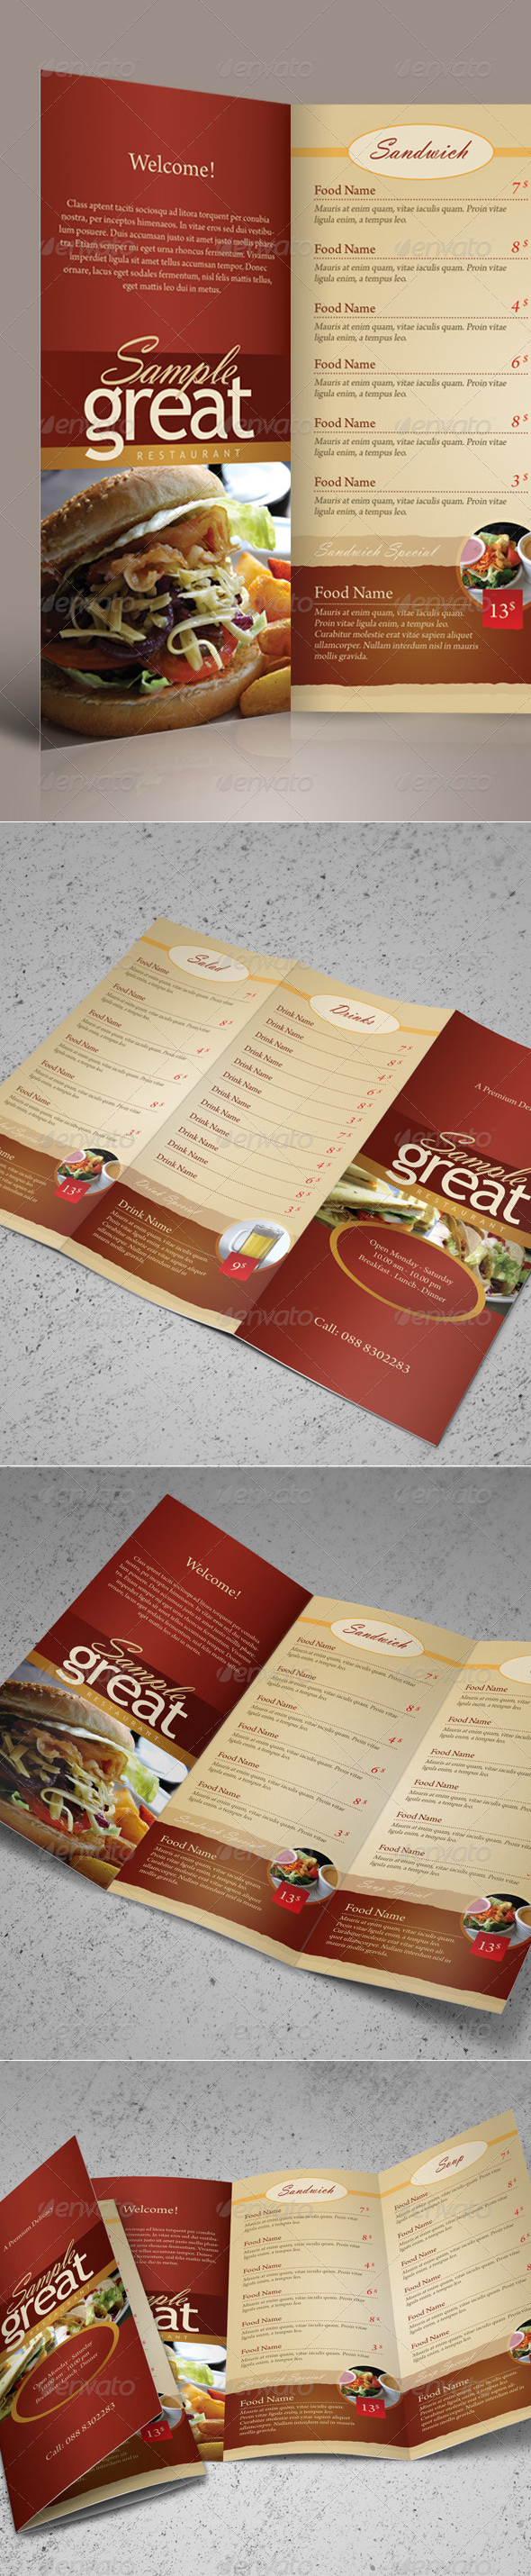 This Template Is Perfect For Any Restaurant Cafe That Needs Clean Elegant Their Take Out Menu Design Project